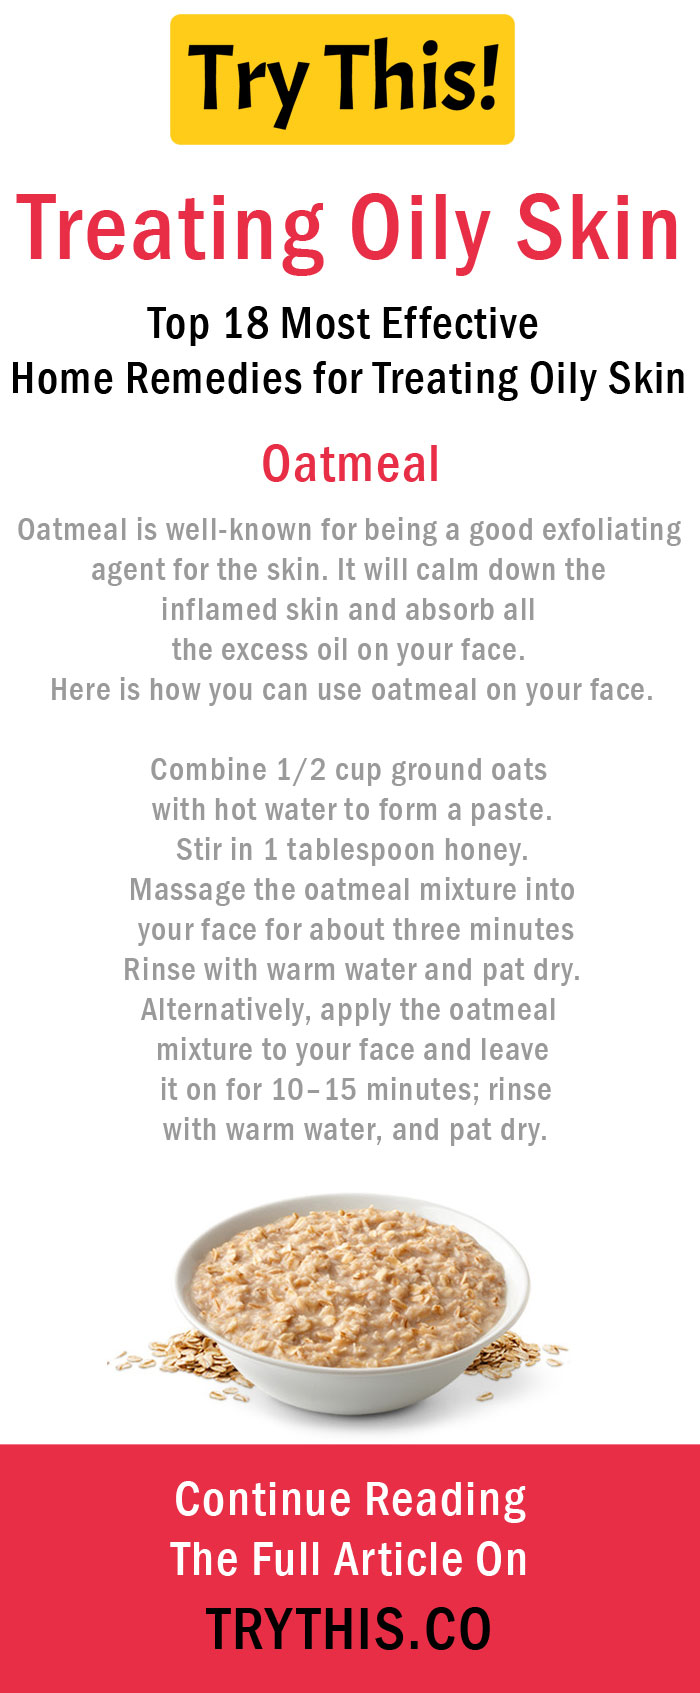 Home Remedies for Treating Oily Skin - Oatmeal